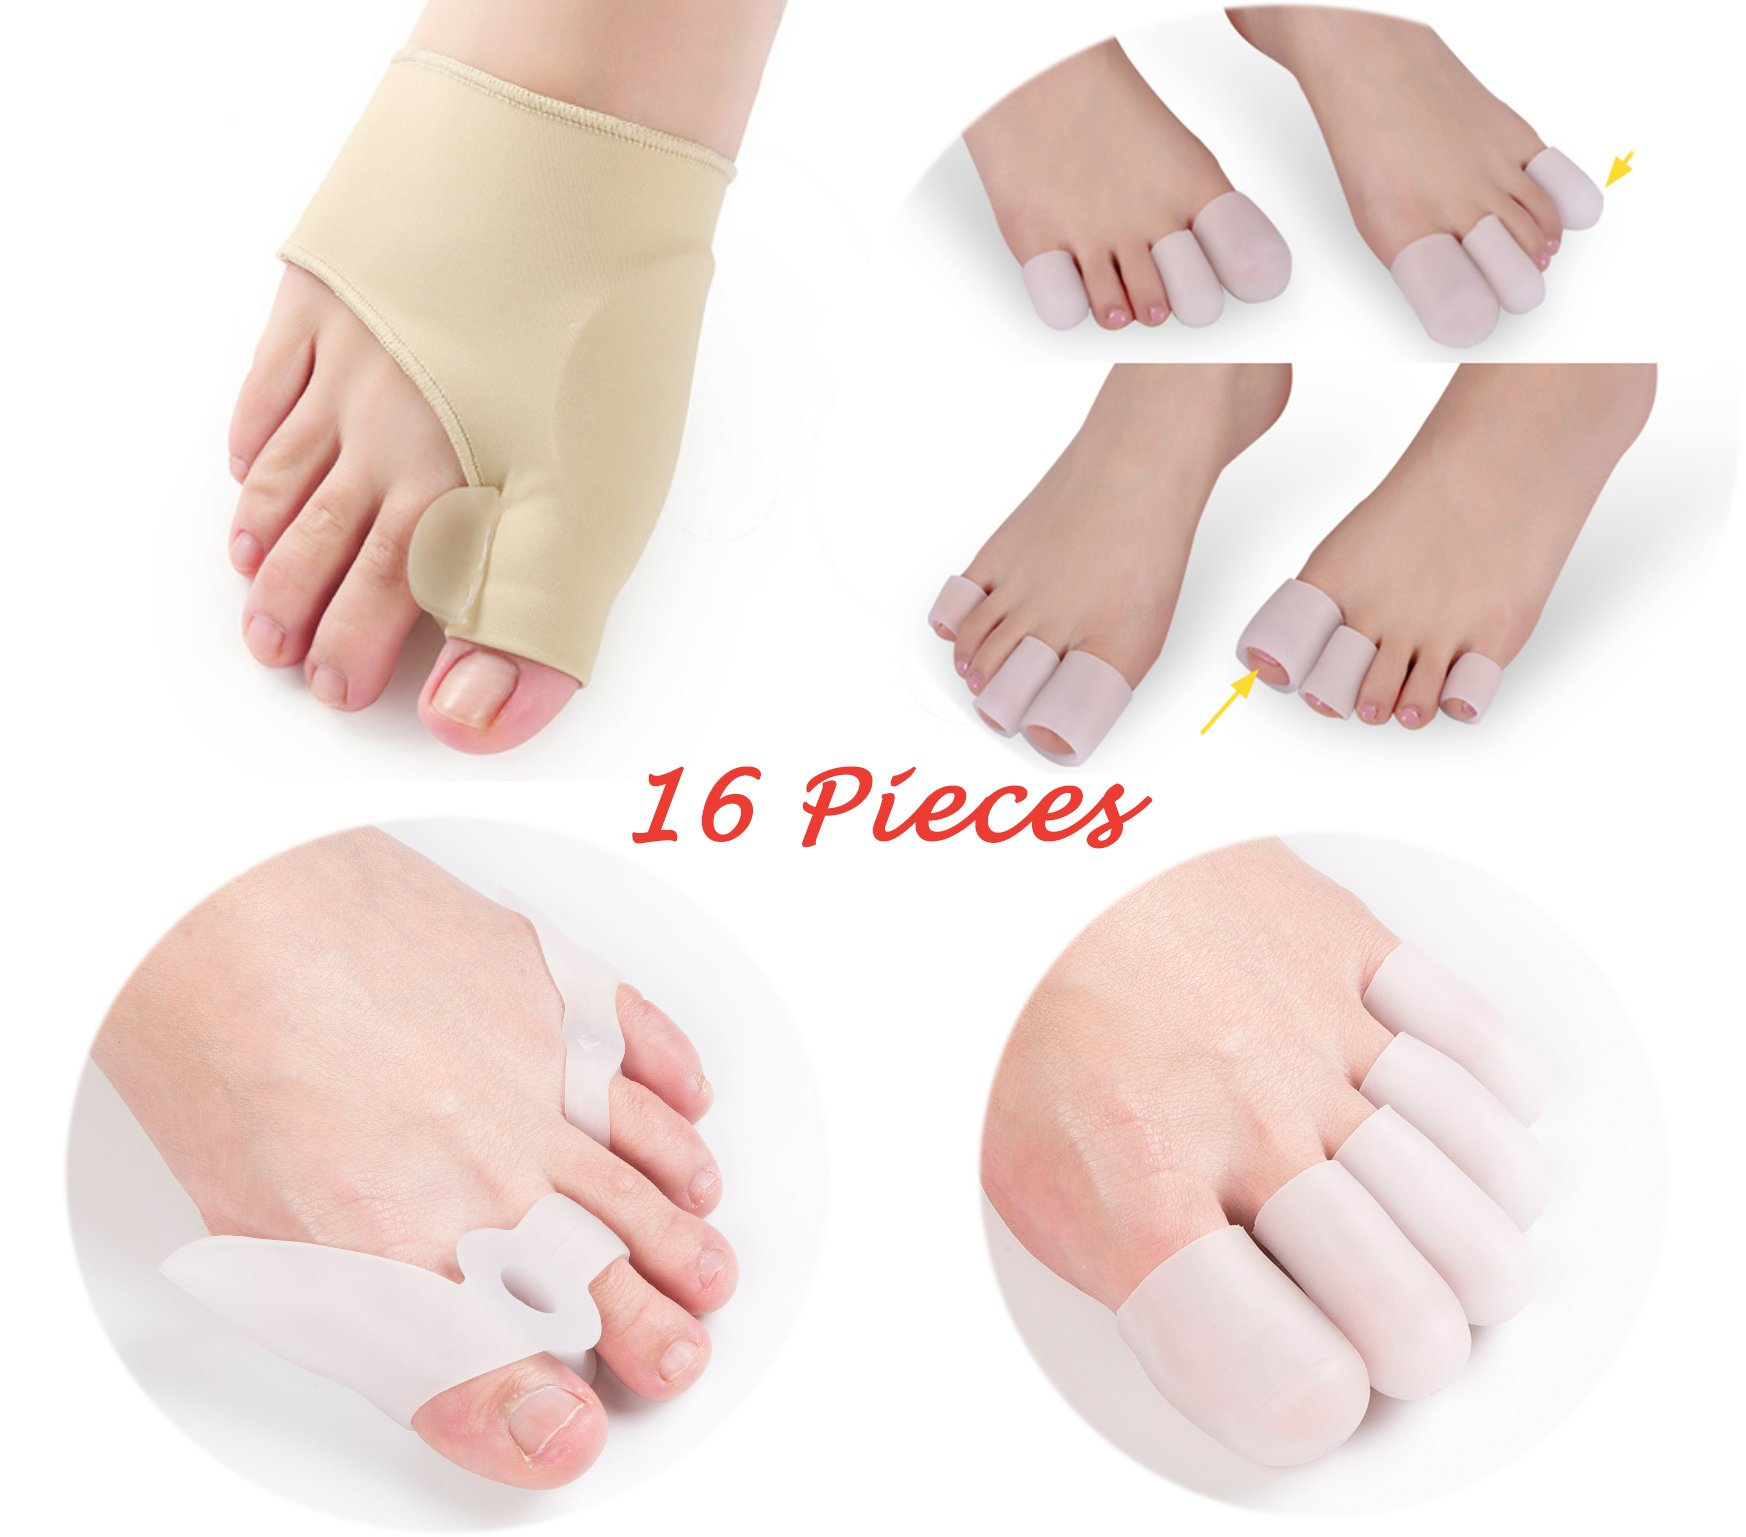 Bunion Splint Gel Toe Separator, Gel Pad Bunion Splints with Spacer, Bunions Relief Toe Protectors Silicone Toe Corrector Straightener Kit 16 Pieces, Big and Small Toe Protector for Foot Corn/Blister/